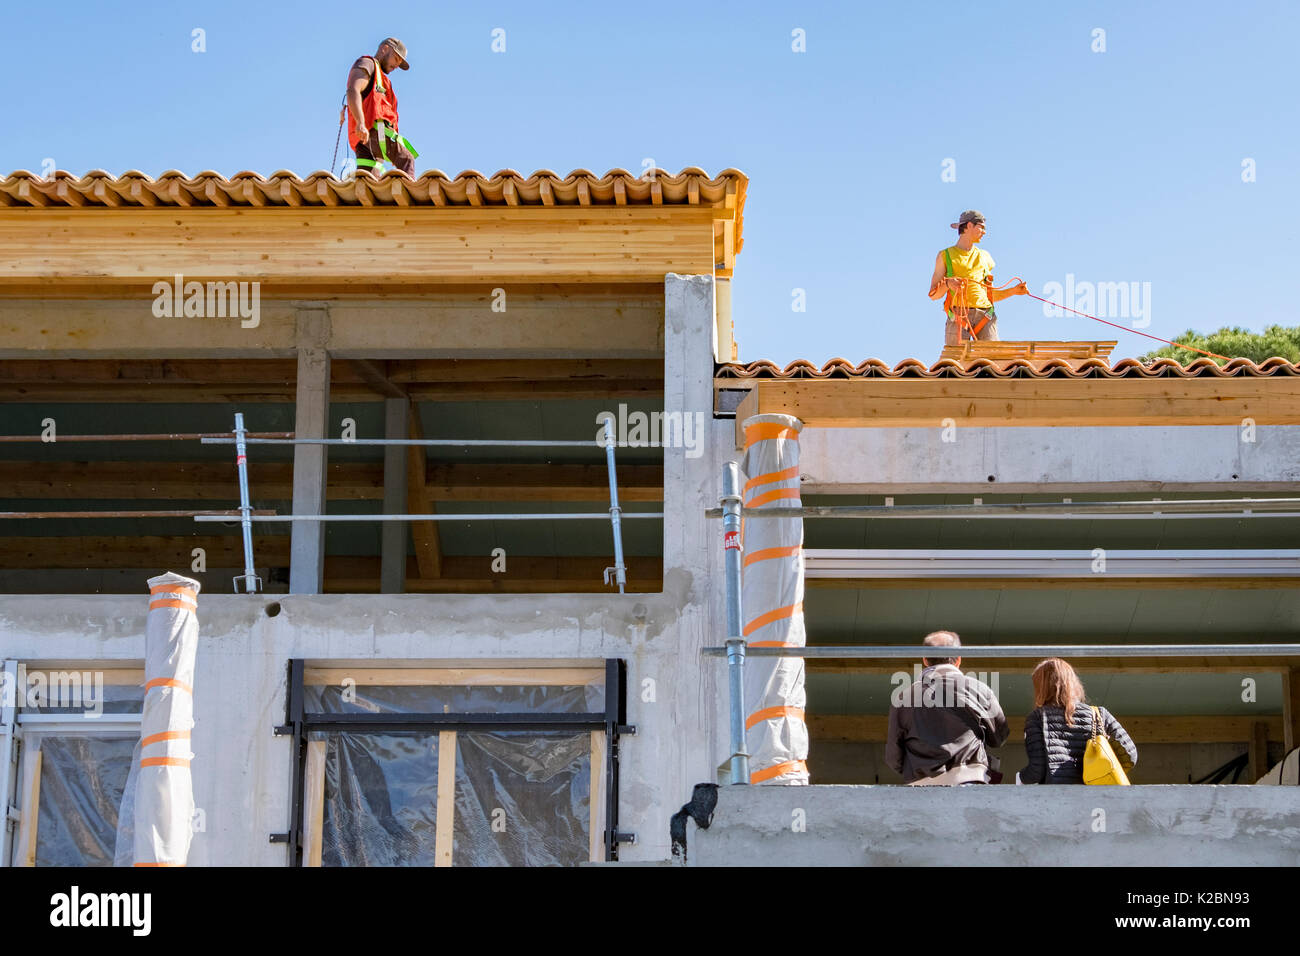 Roofers working on tiling the roof of a new house under construction on the French Riviera in southern France - Stock Image